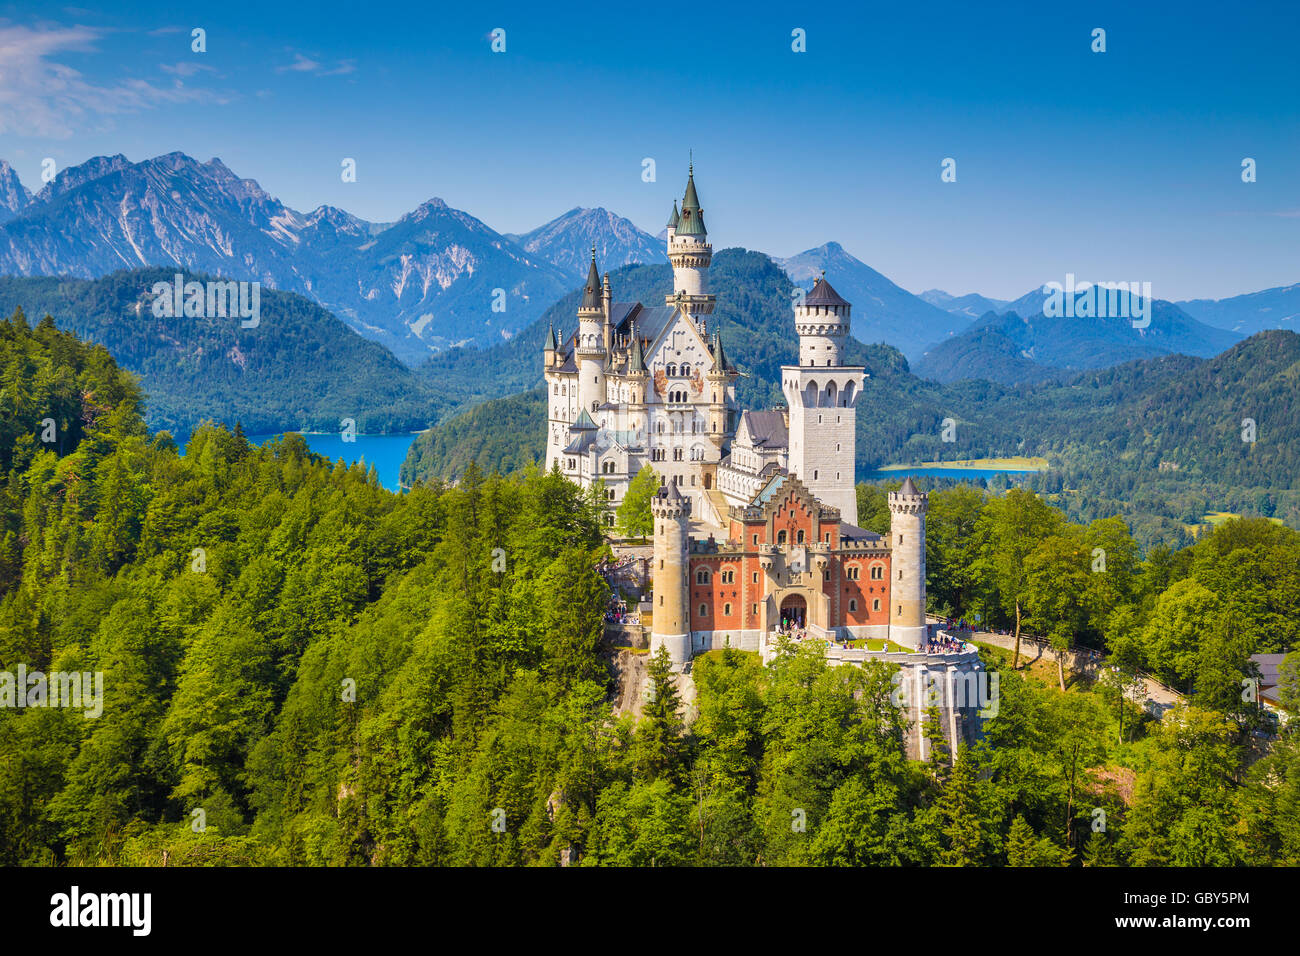 Beautiful view of world-famous Neuschwanstein Castle, one of Europe's most visited castles, in summer, Bavaria, - Stock Image